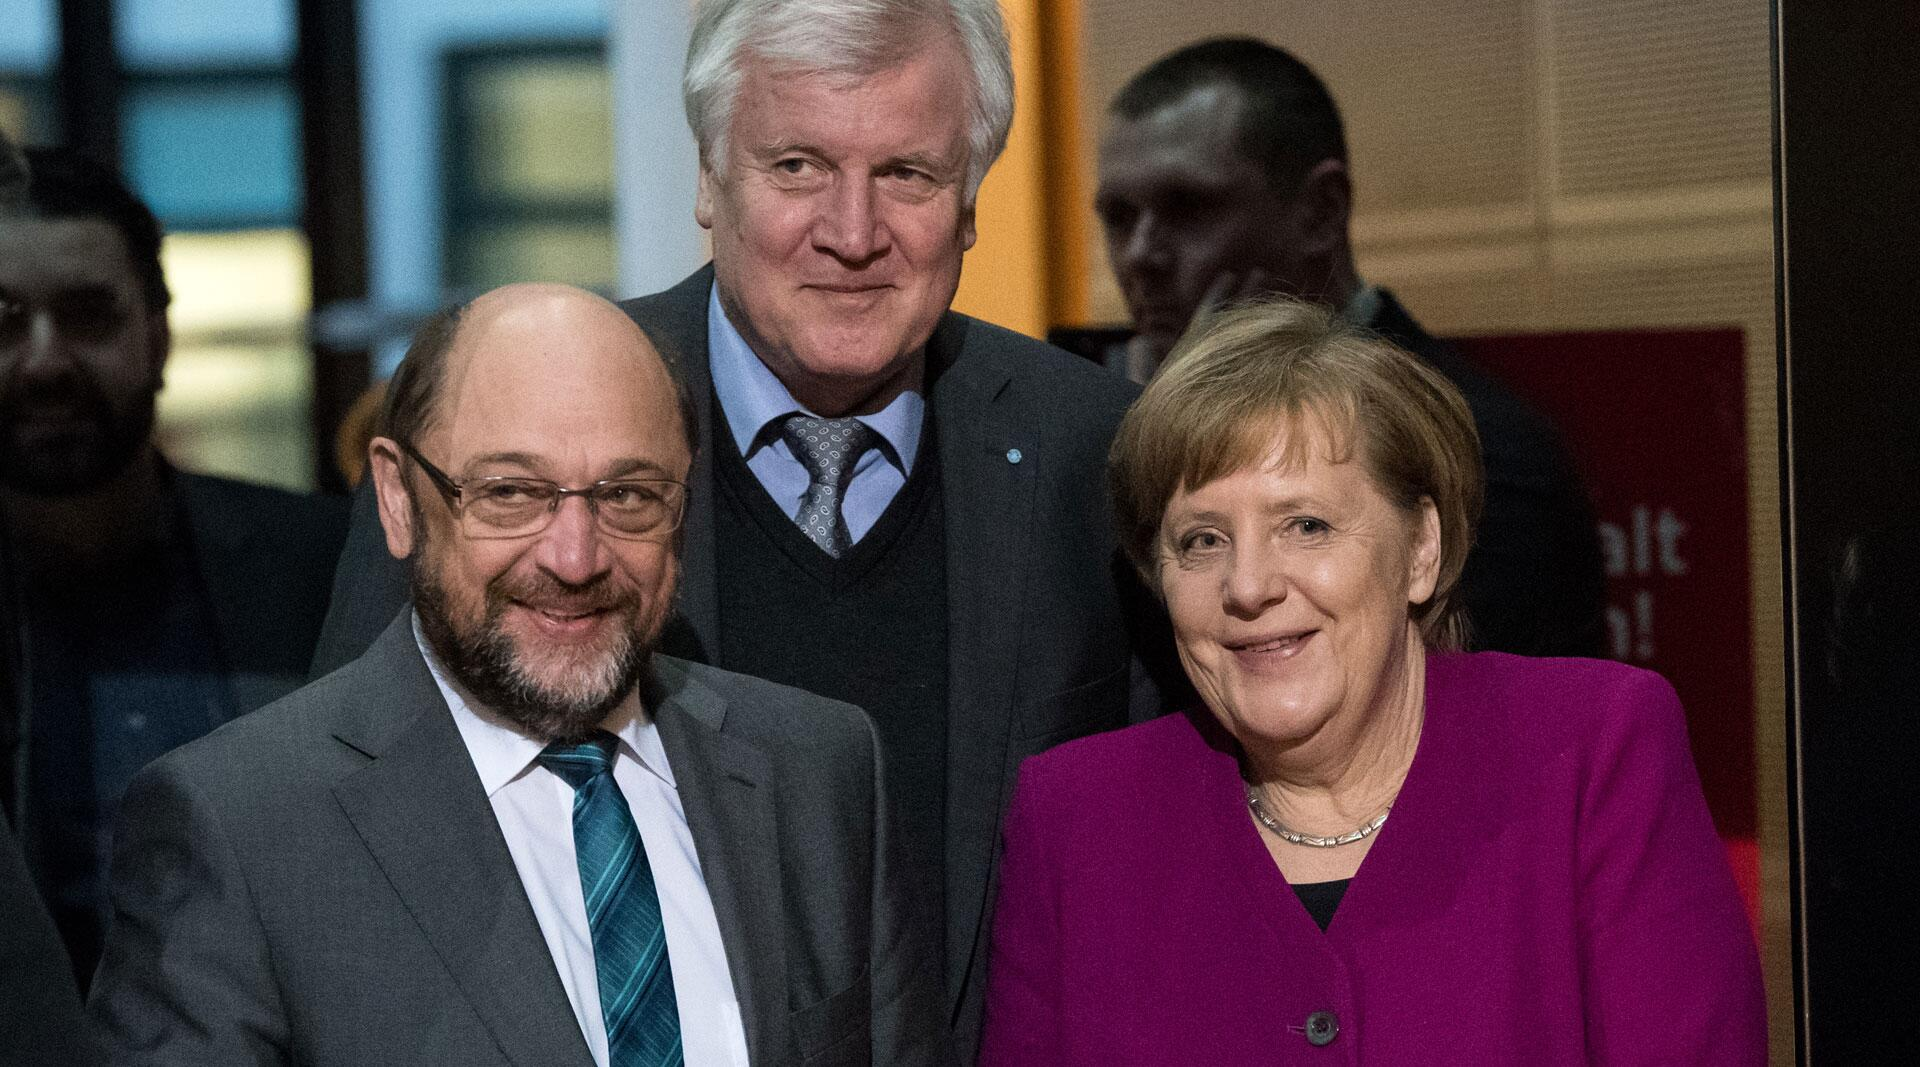 Bild zu Coalition talks between SPD, CDU and CSU, Angela Merkel, Horst Seehofer, Martin Schulz